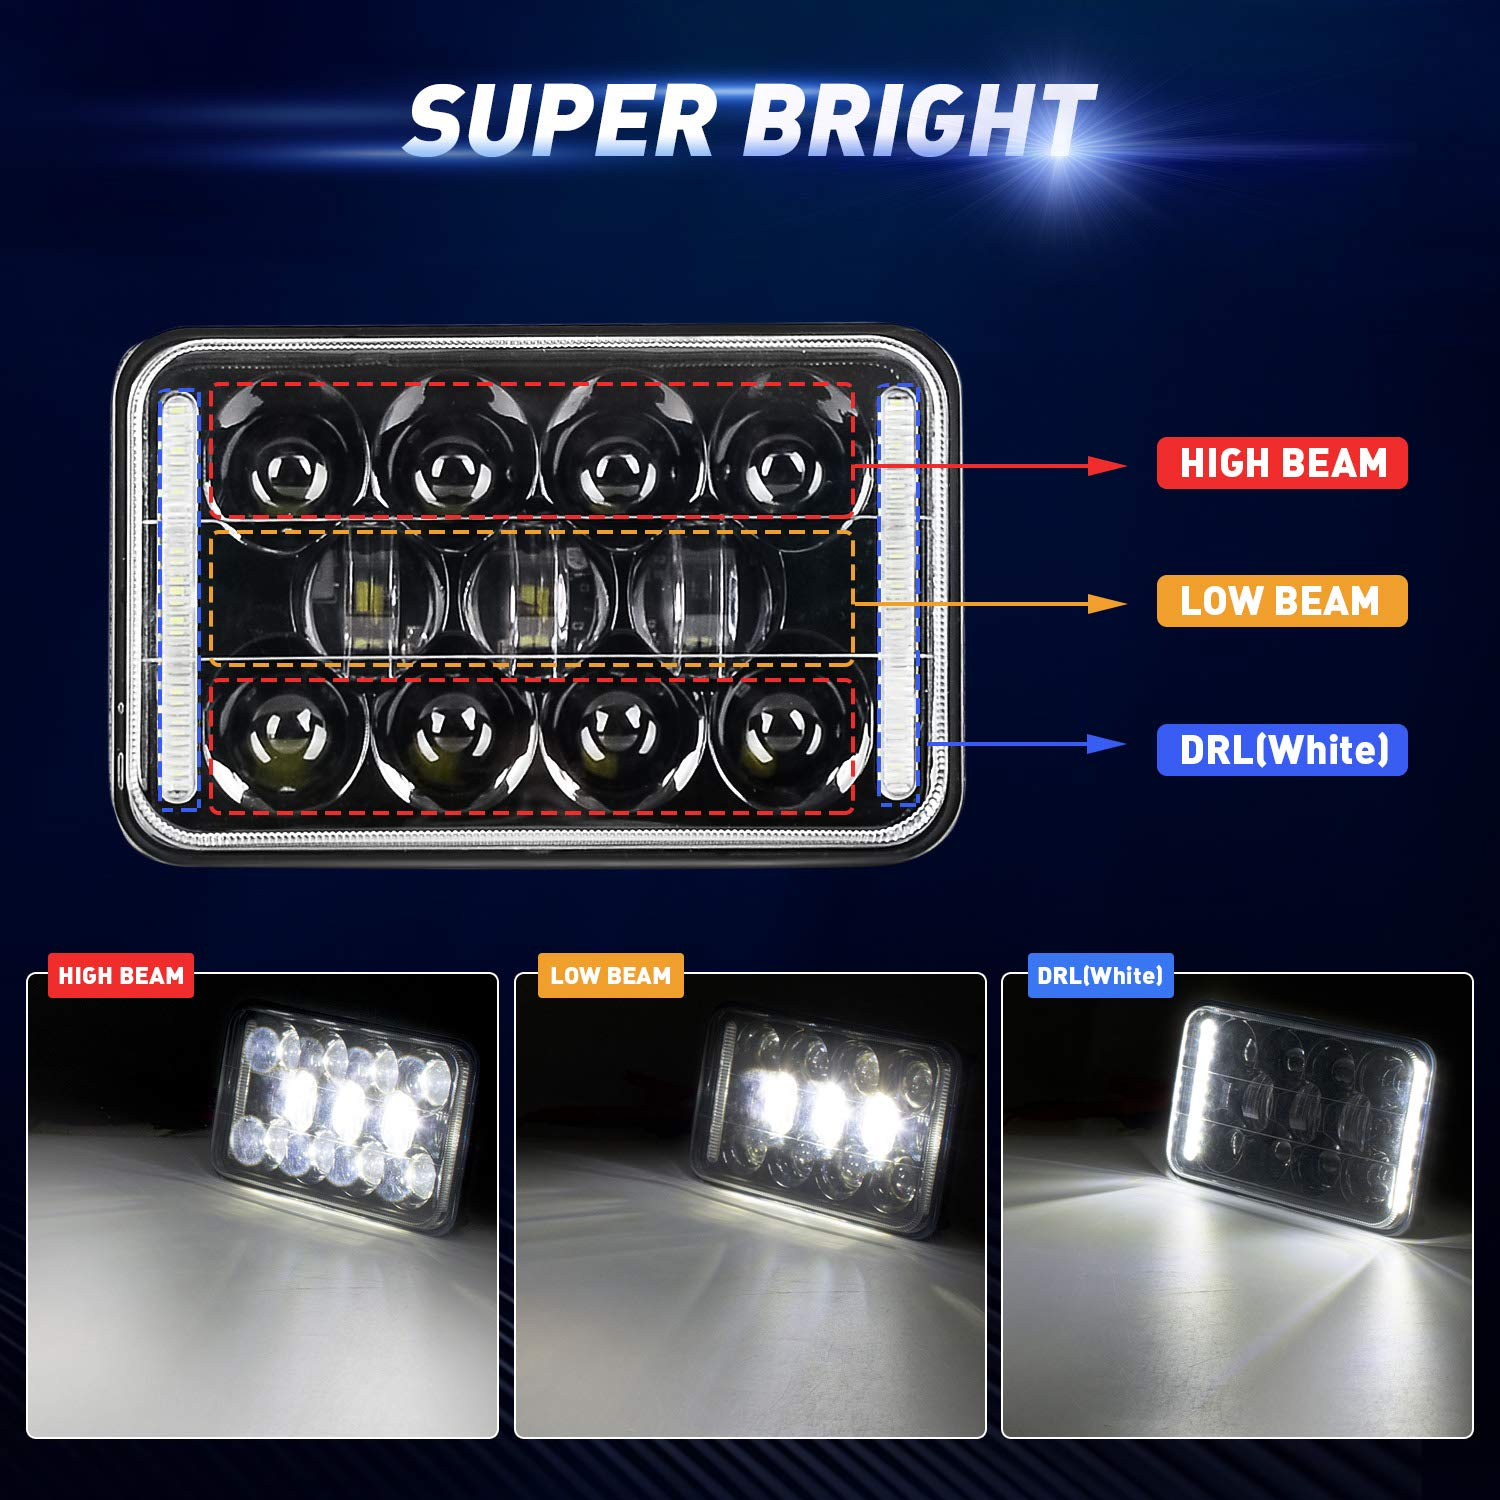 2PCS 4x6 LED Headlights with Brackets,EBESTauto 60w Sealed Beam Led Headlight bracket with High Low Beam DRL Rectangle Headlight Replacement for Truck H4651 H4652 H4656 H4666 H6545